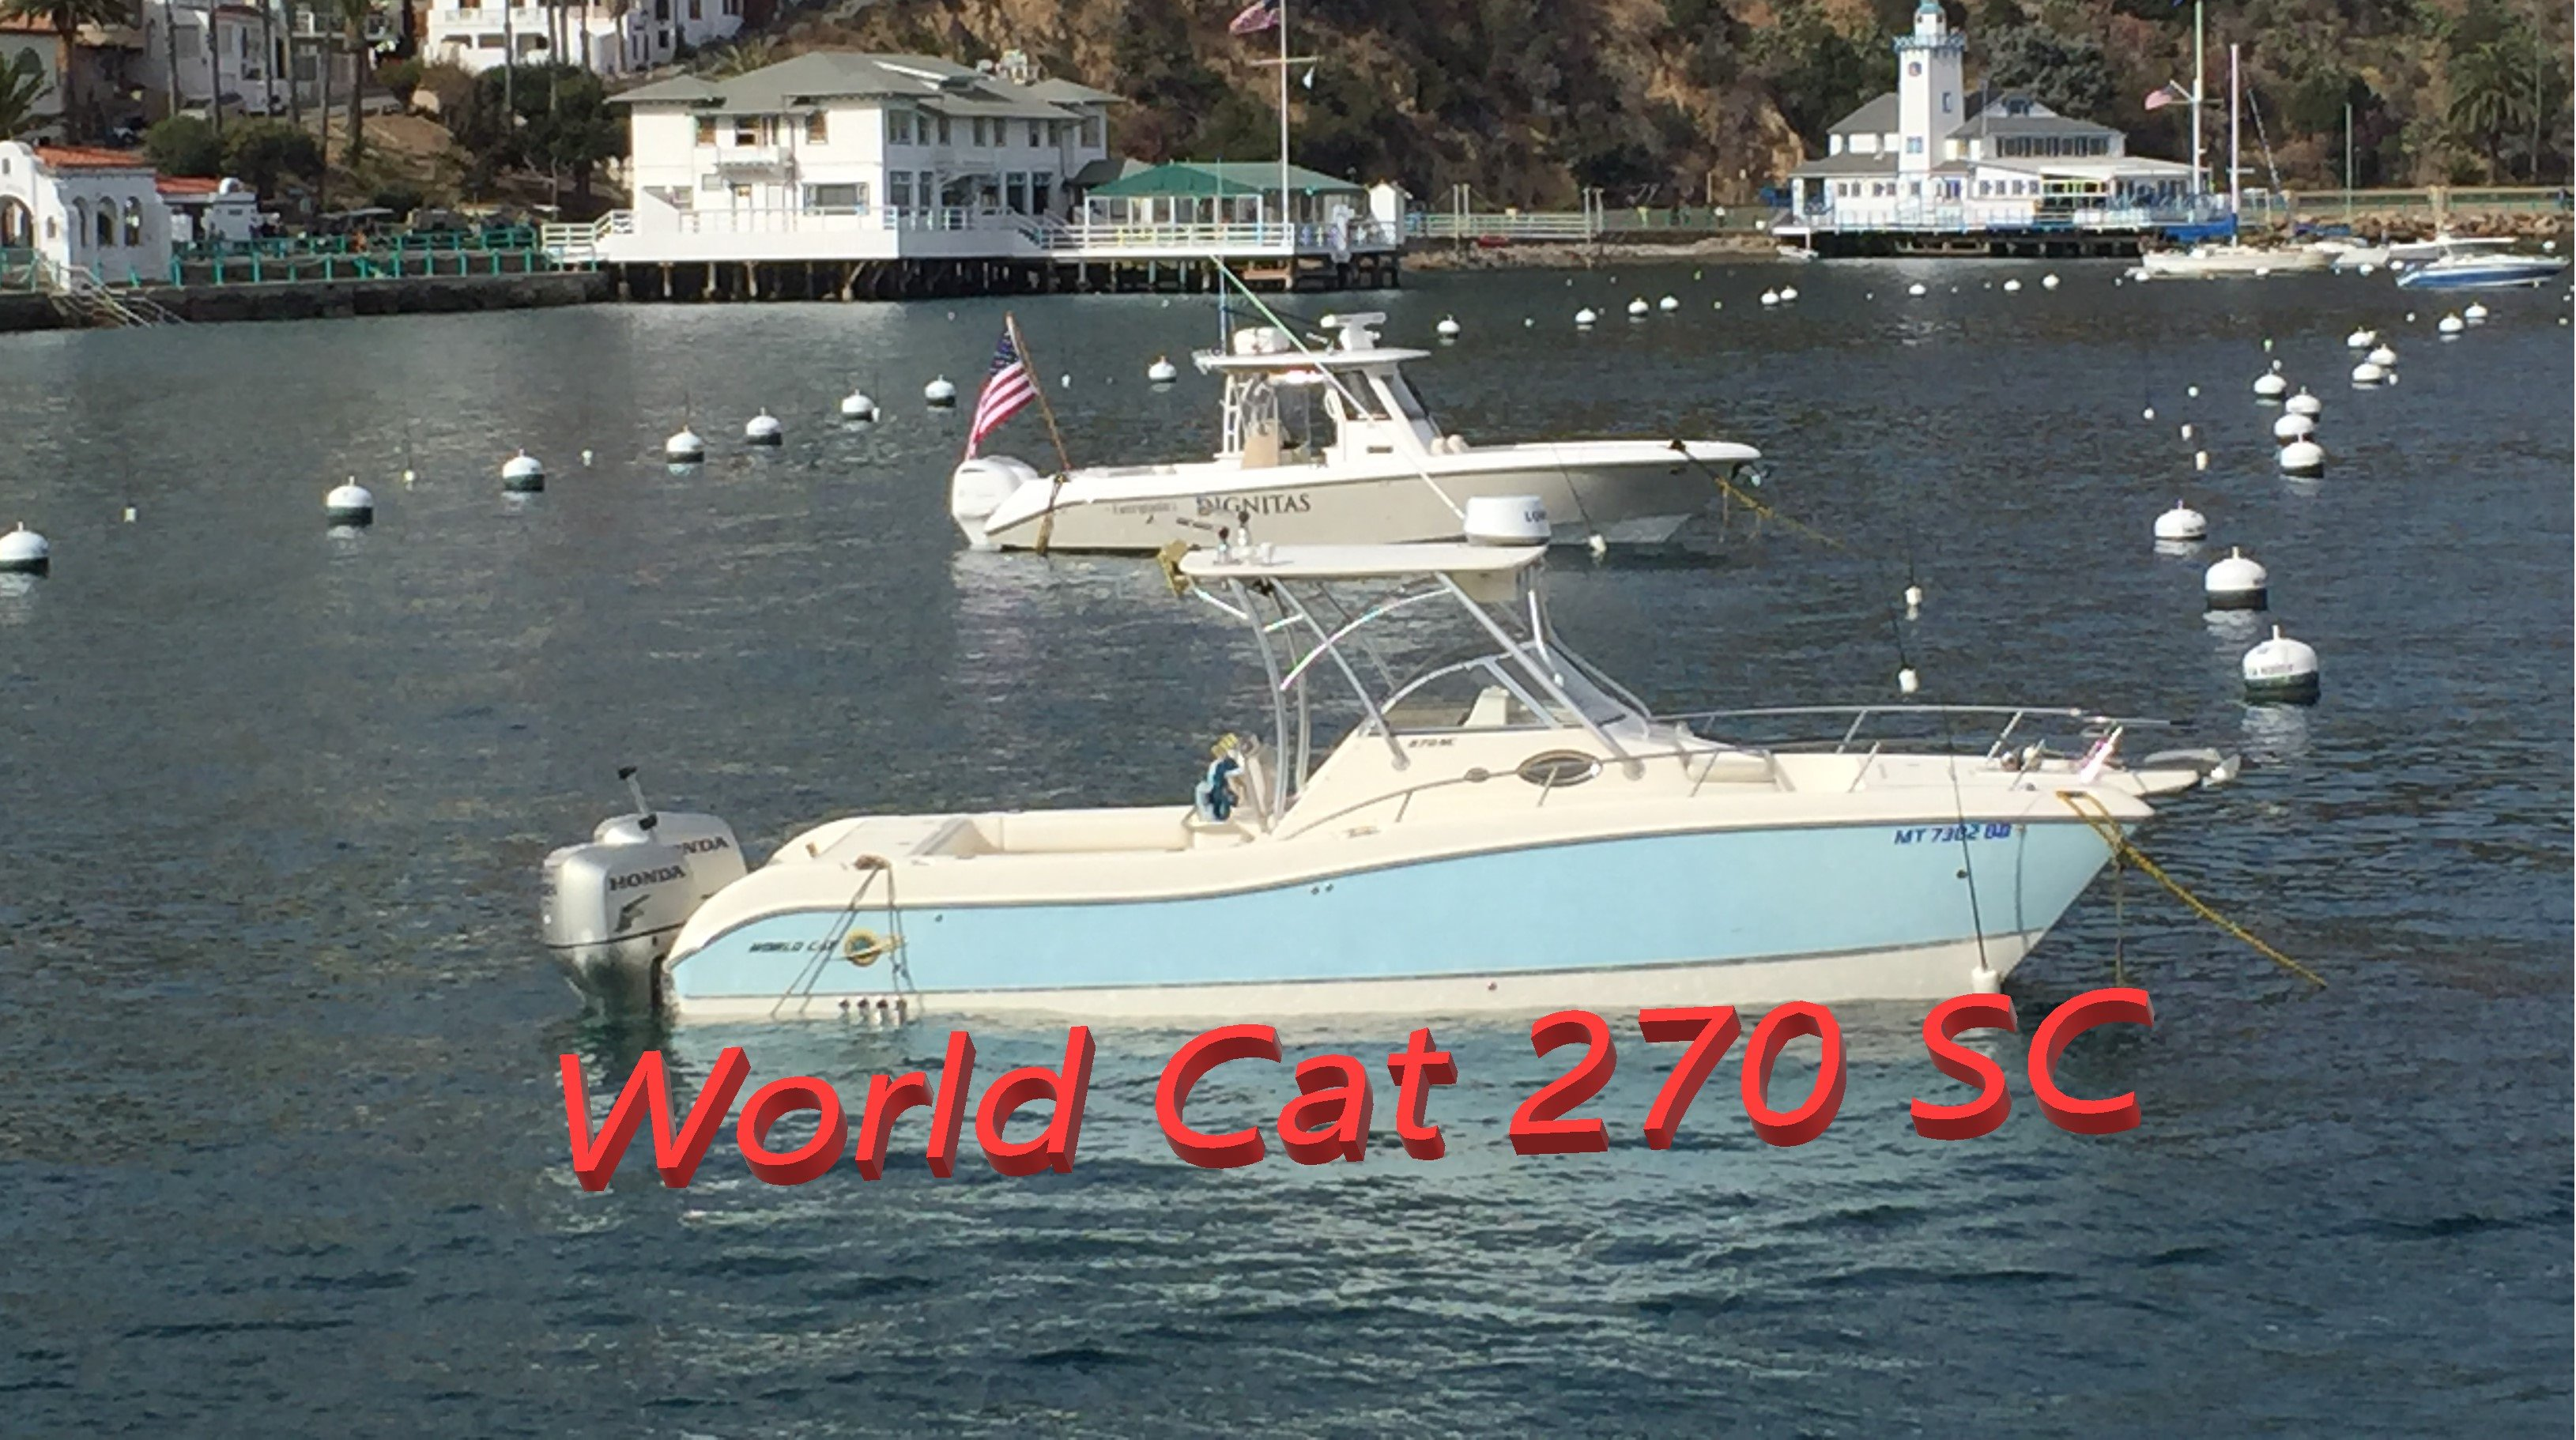 World Cat 270 SC